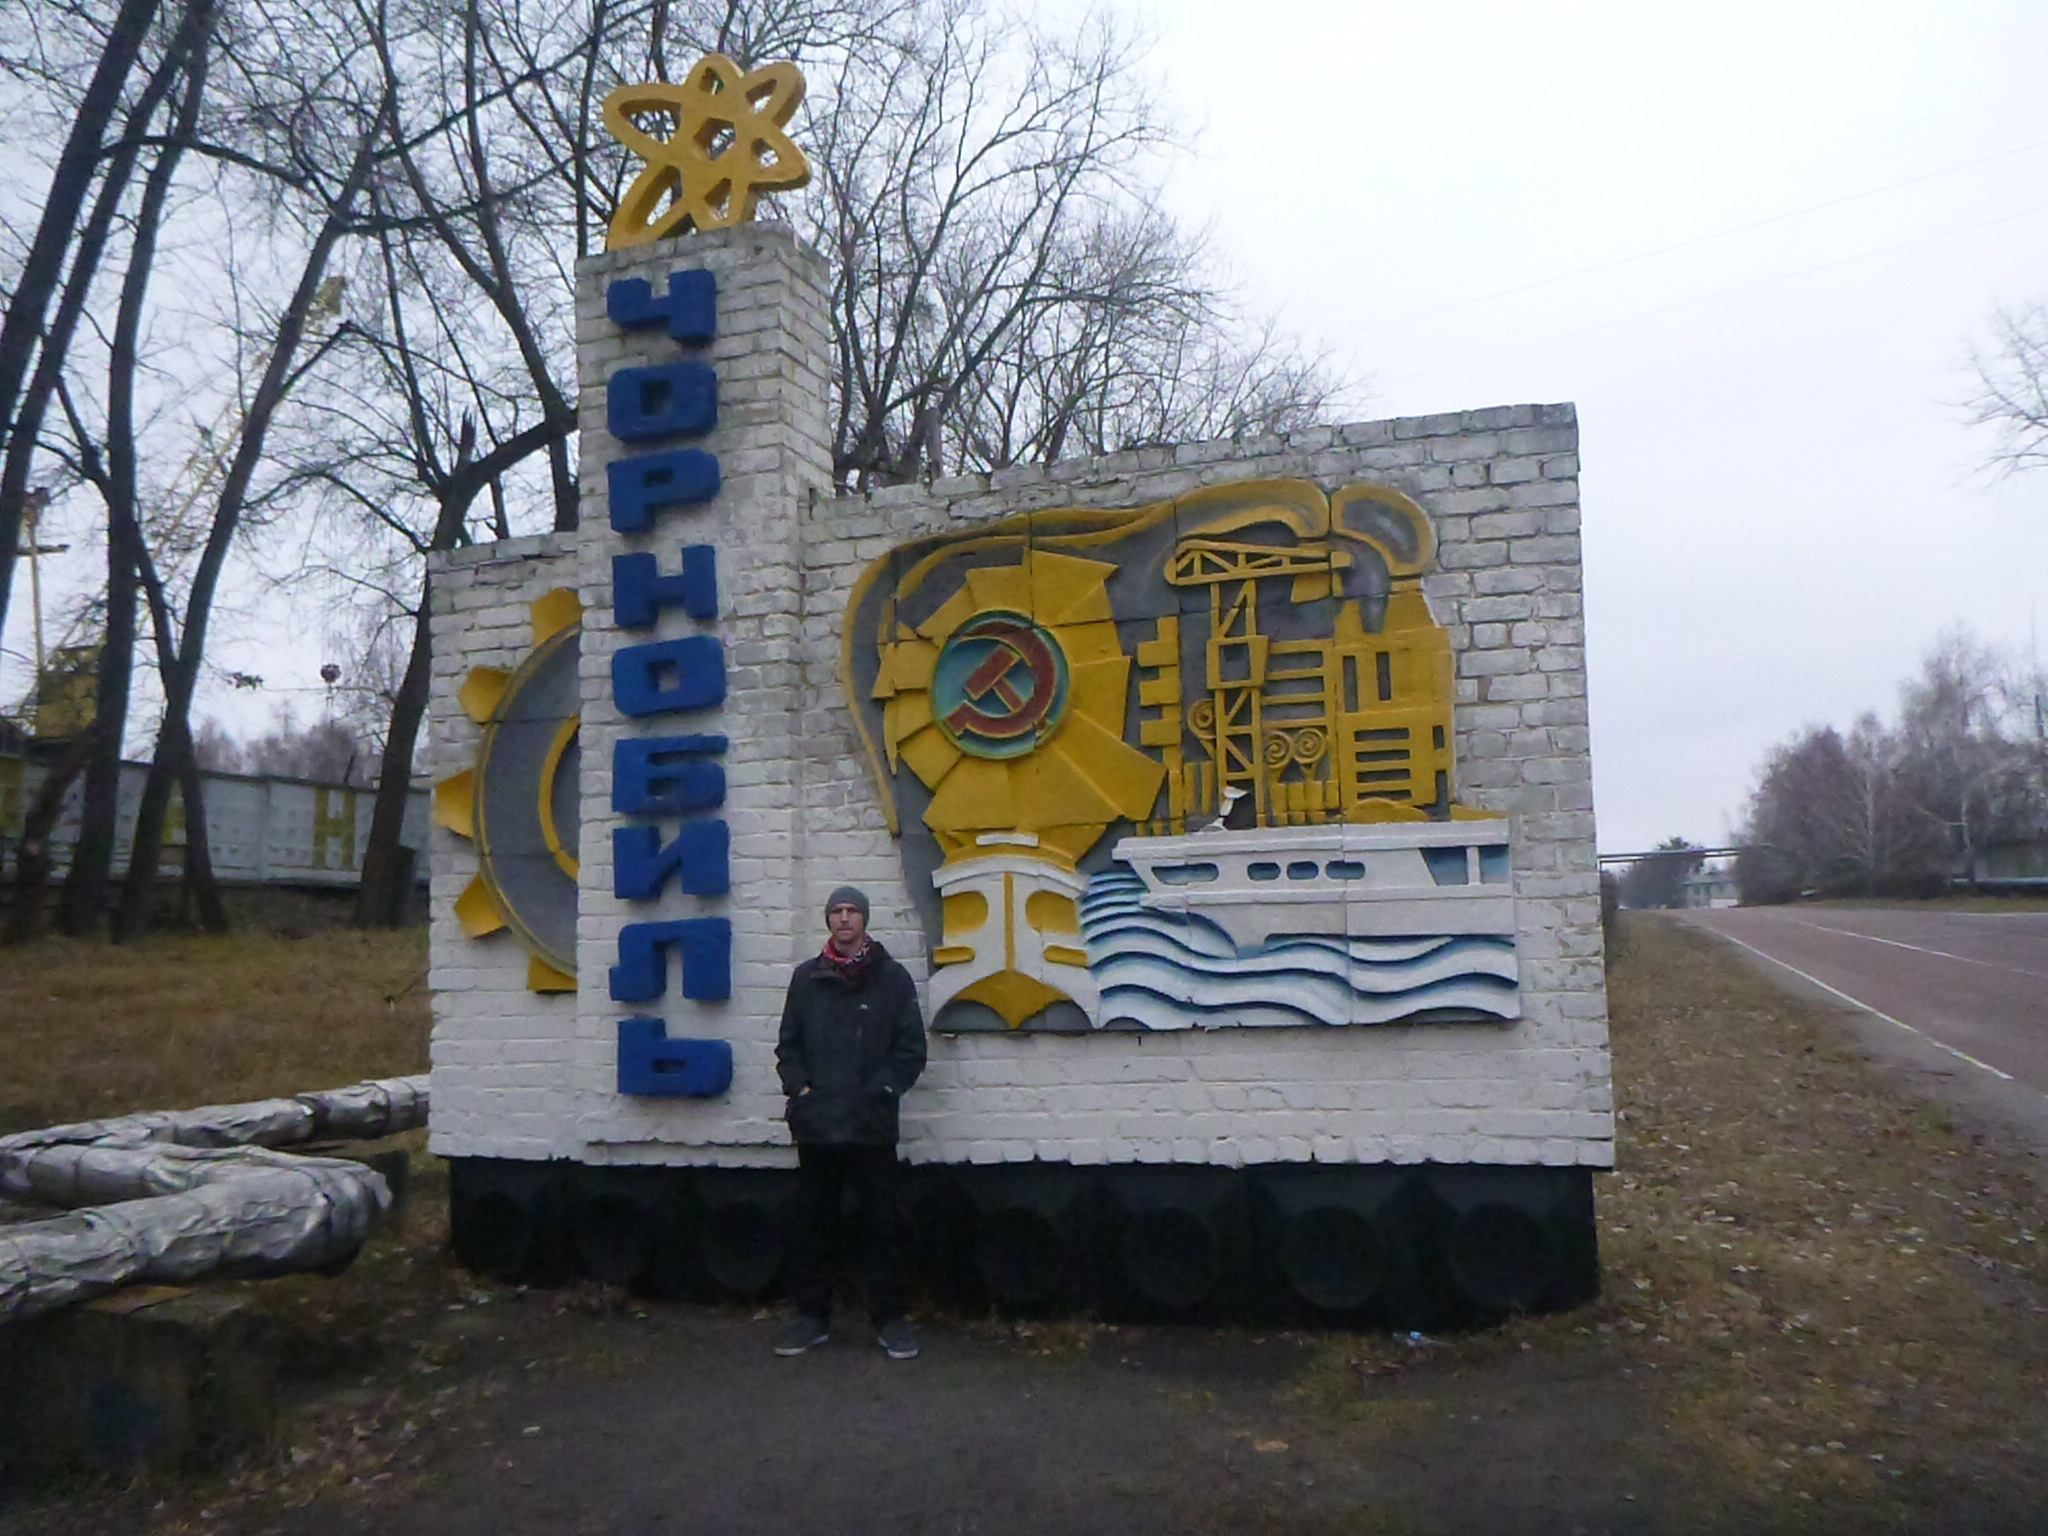 Backpacking in Ukraine: Touring the Chernobyl Exclusion Zone Tour Part 3 – Backpacking in Chernobyl Town